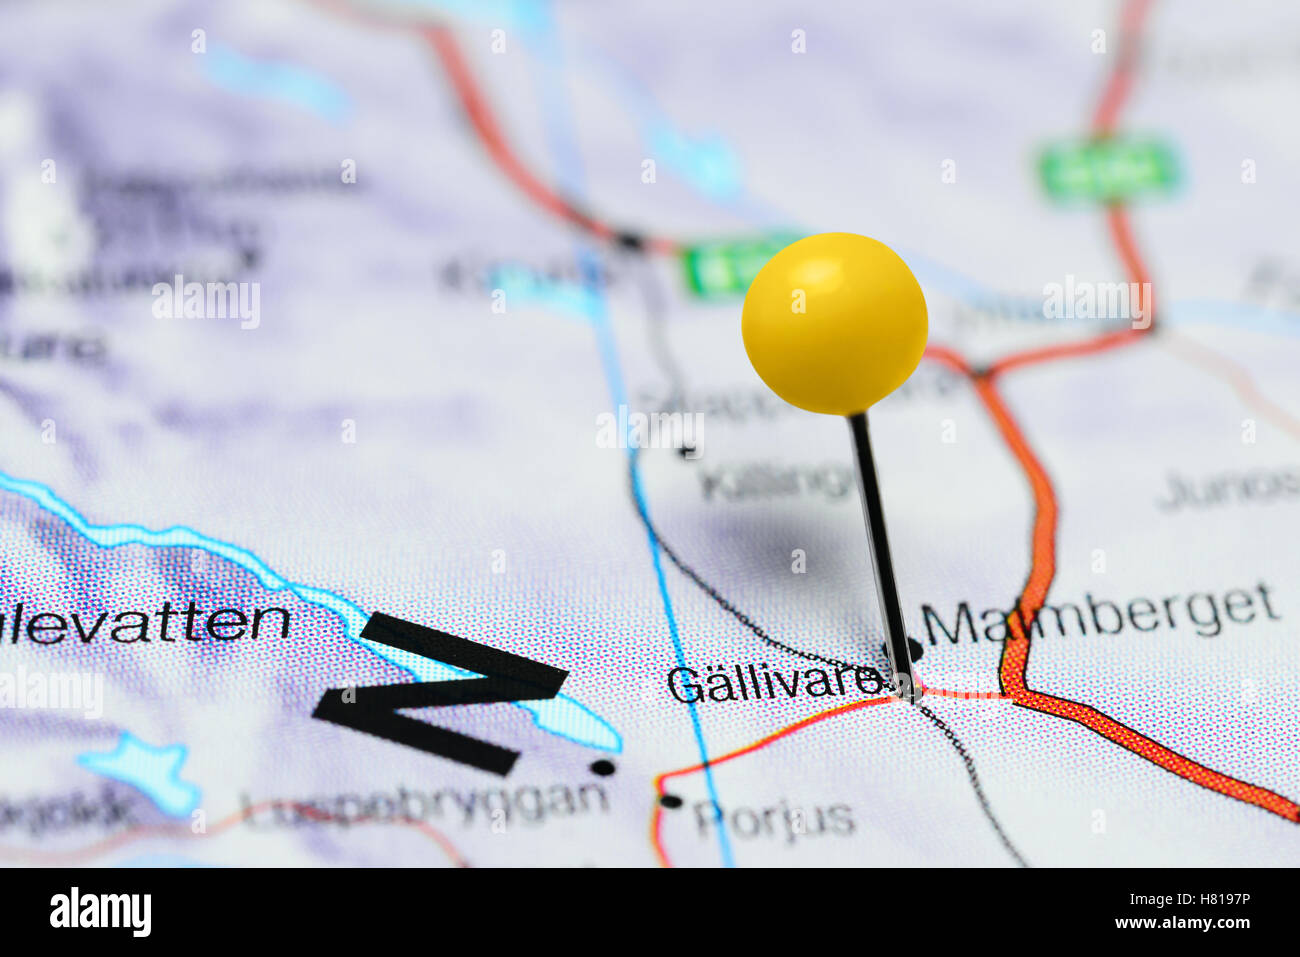 Gallivare pinned on a map of Sweden - Stock Image